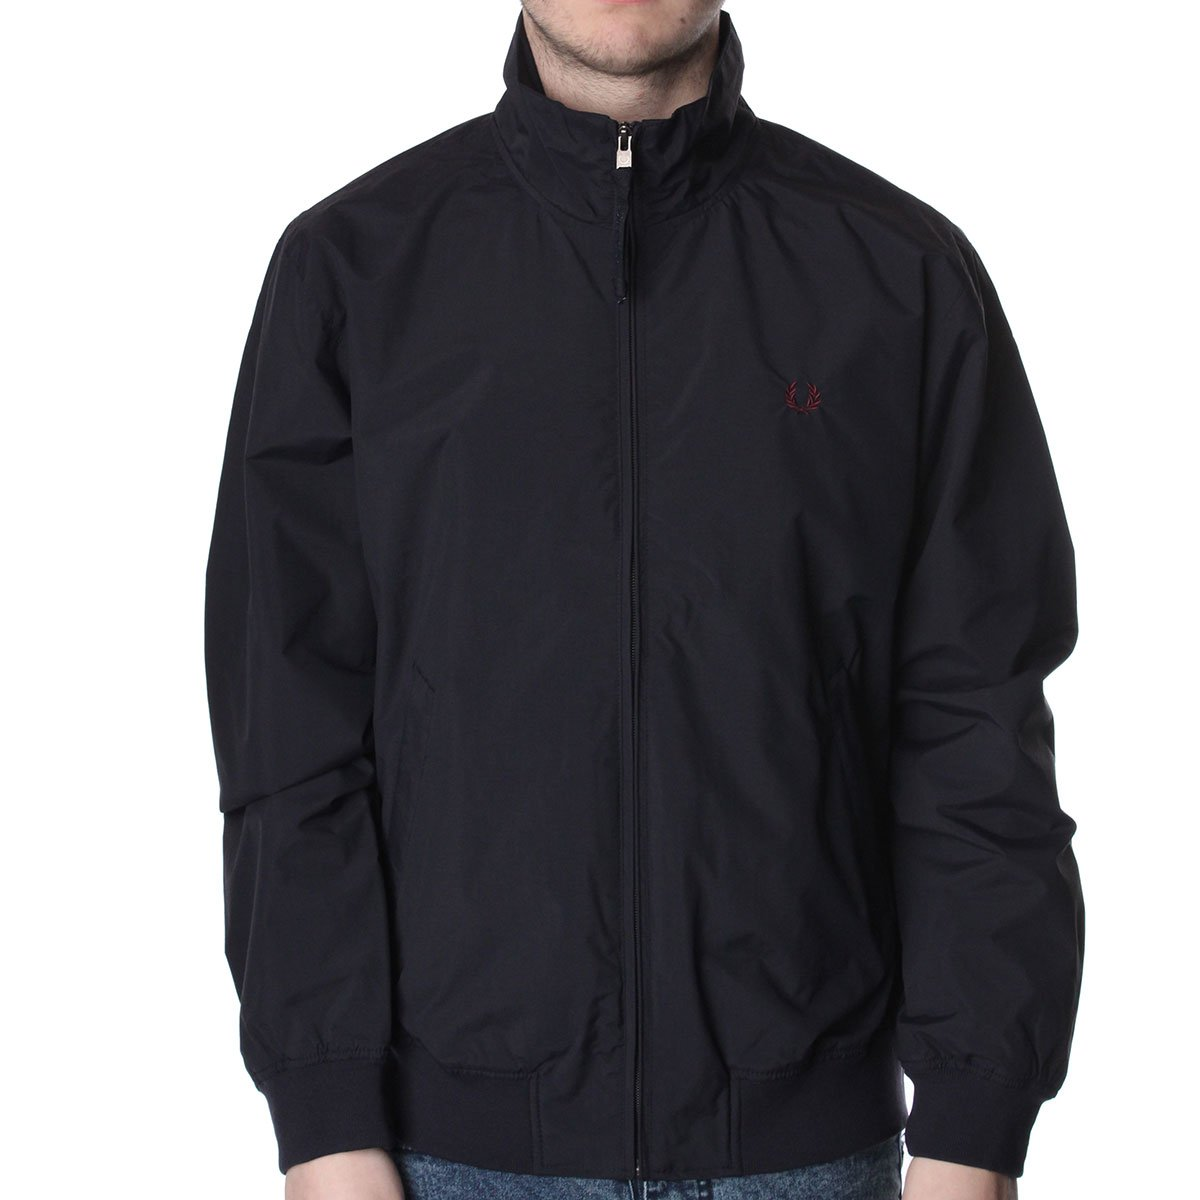 fred perry j7223 sailing jacket fred perry from the menswear site uk. Black Bedroom Furniture Sets. Home Design Ideas